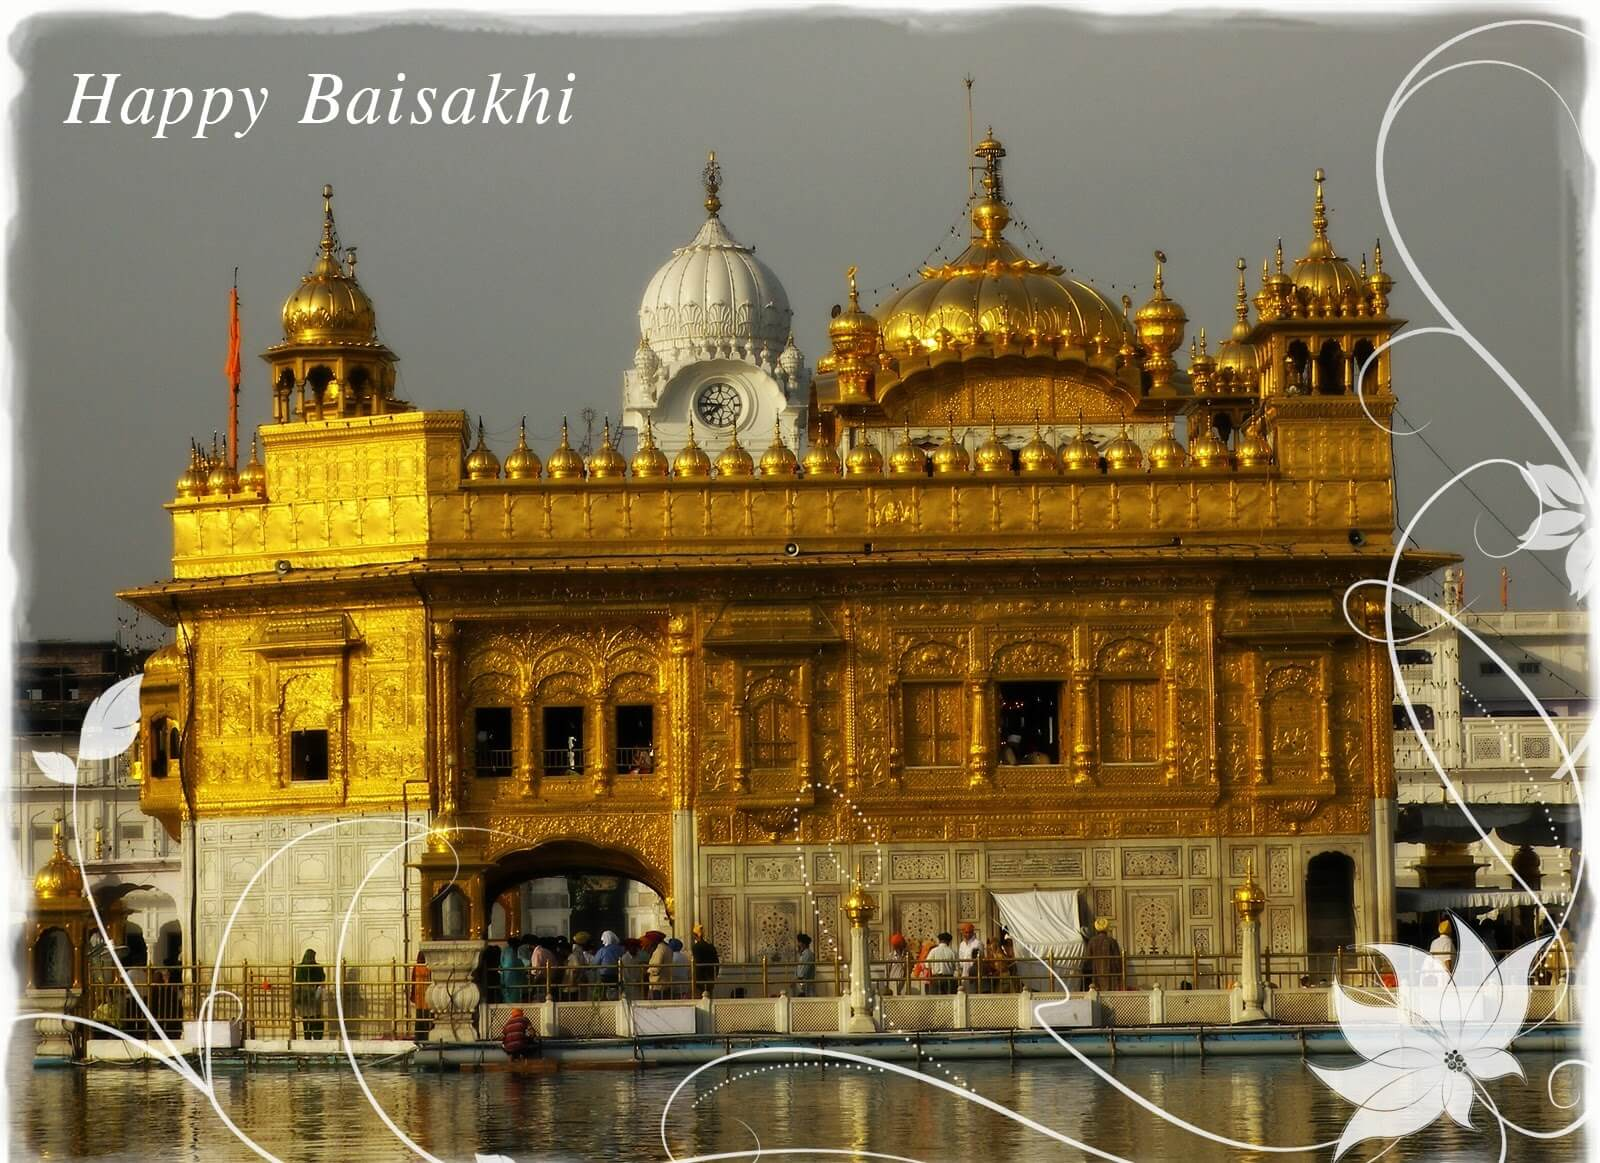 happy baisakhi 2017 images hd